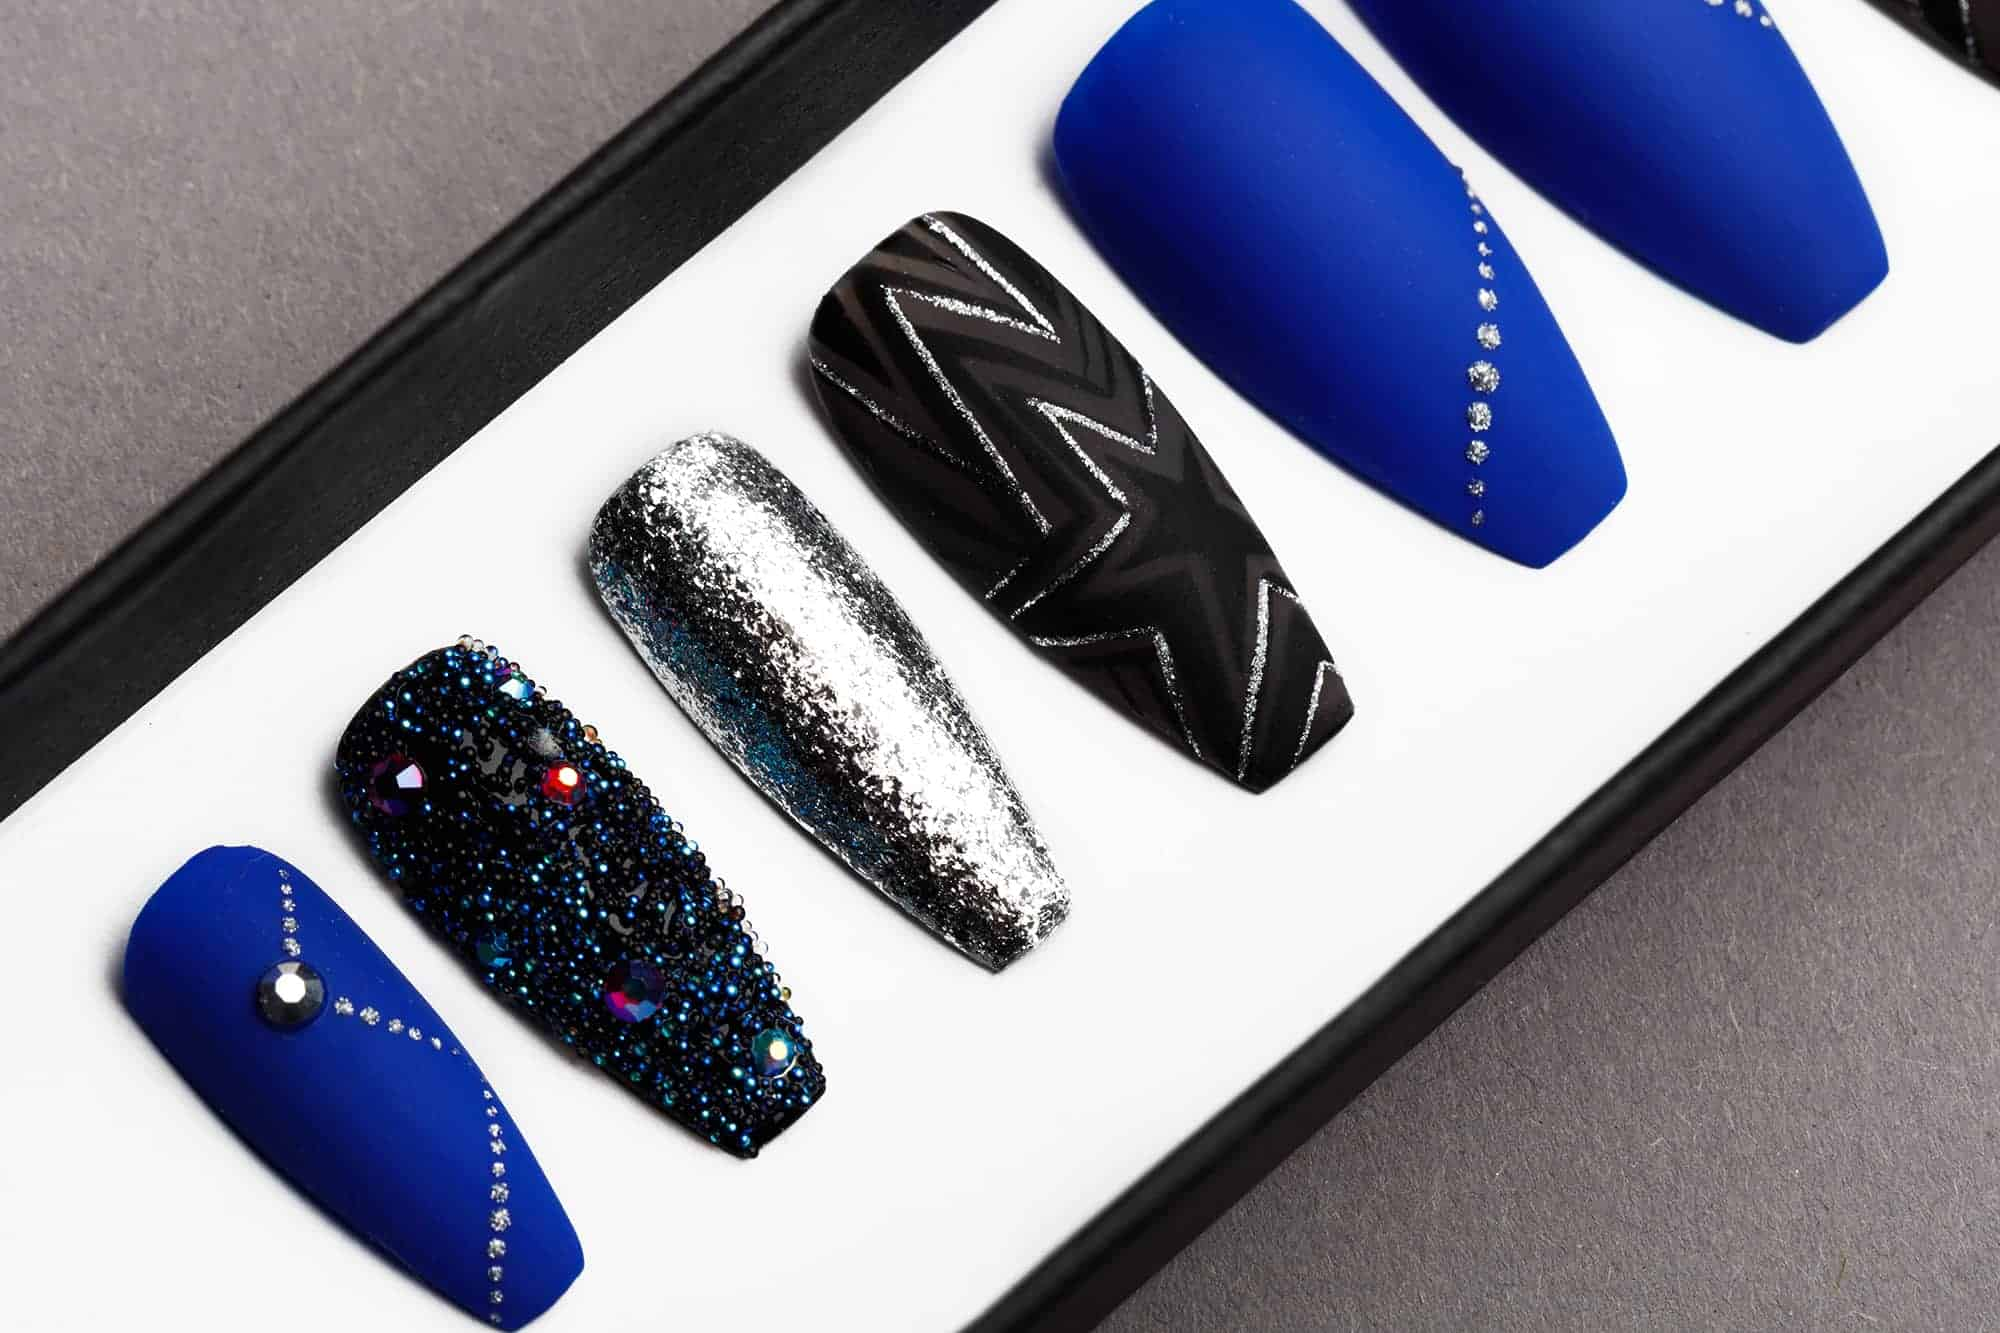 Ultramarine Star Press on Nails with Swarovski Crystals | Unicorn Nails | Hand painted Nail Art | Fake Nails | False Nails | Celebrity Nails